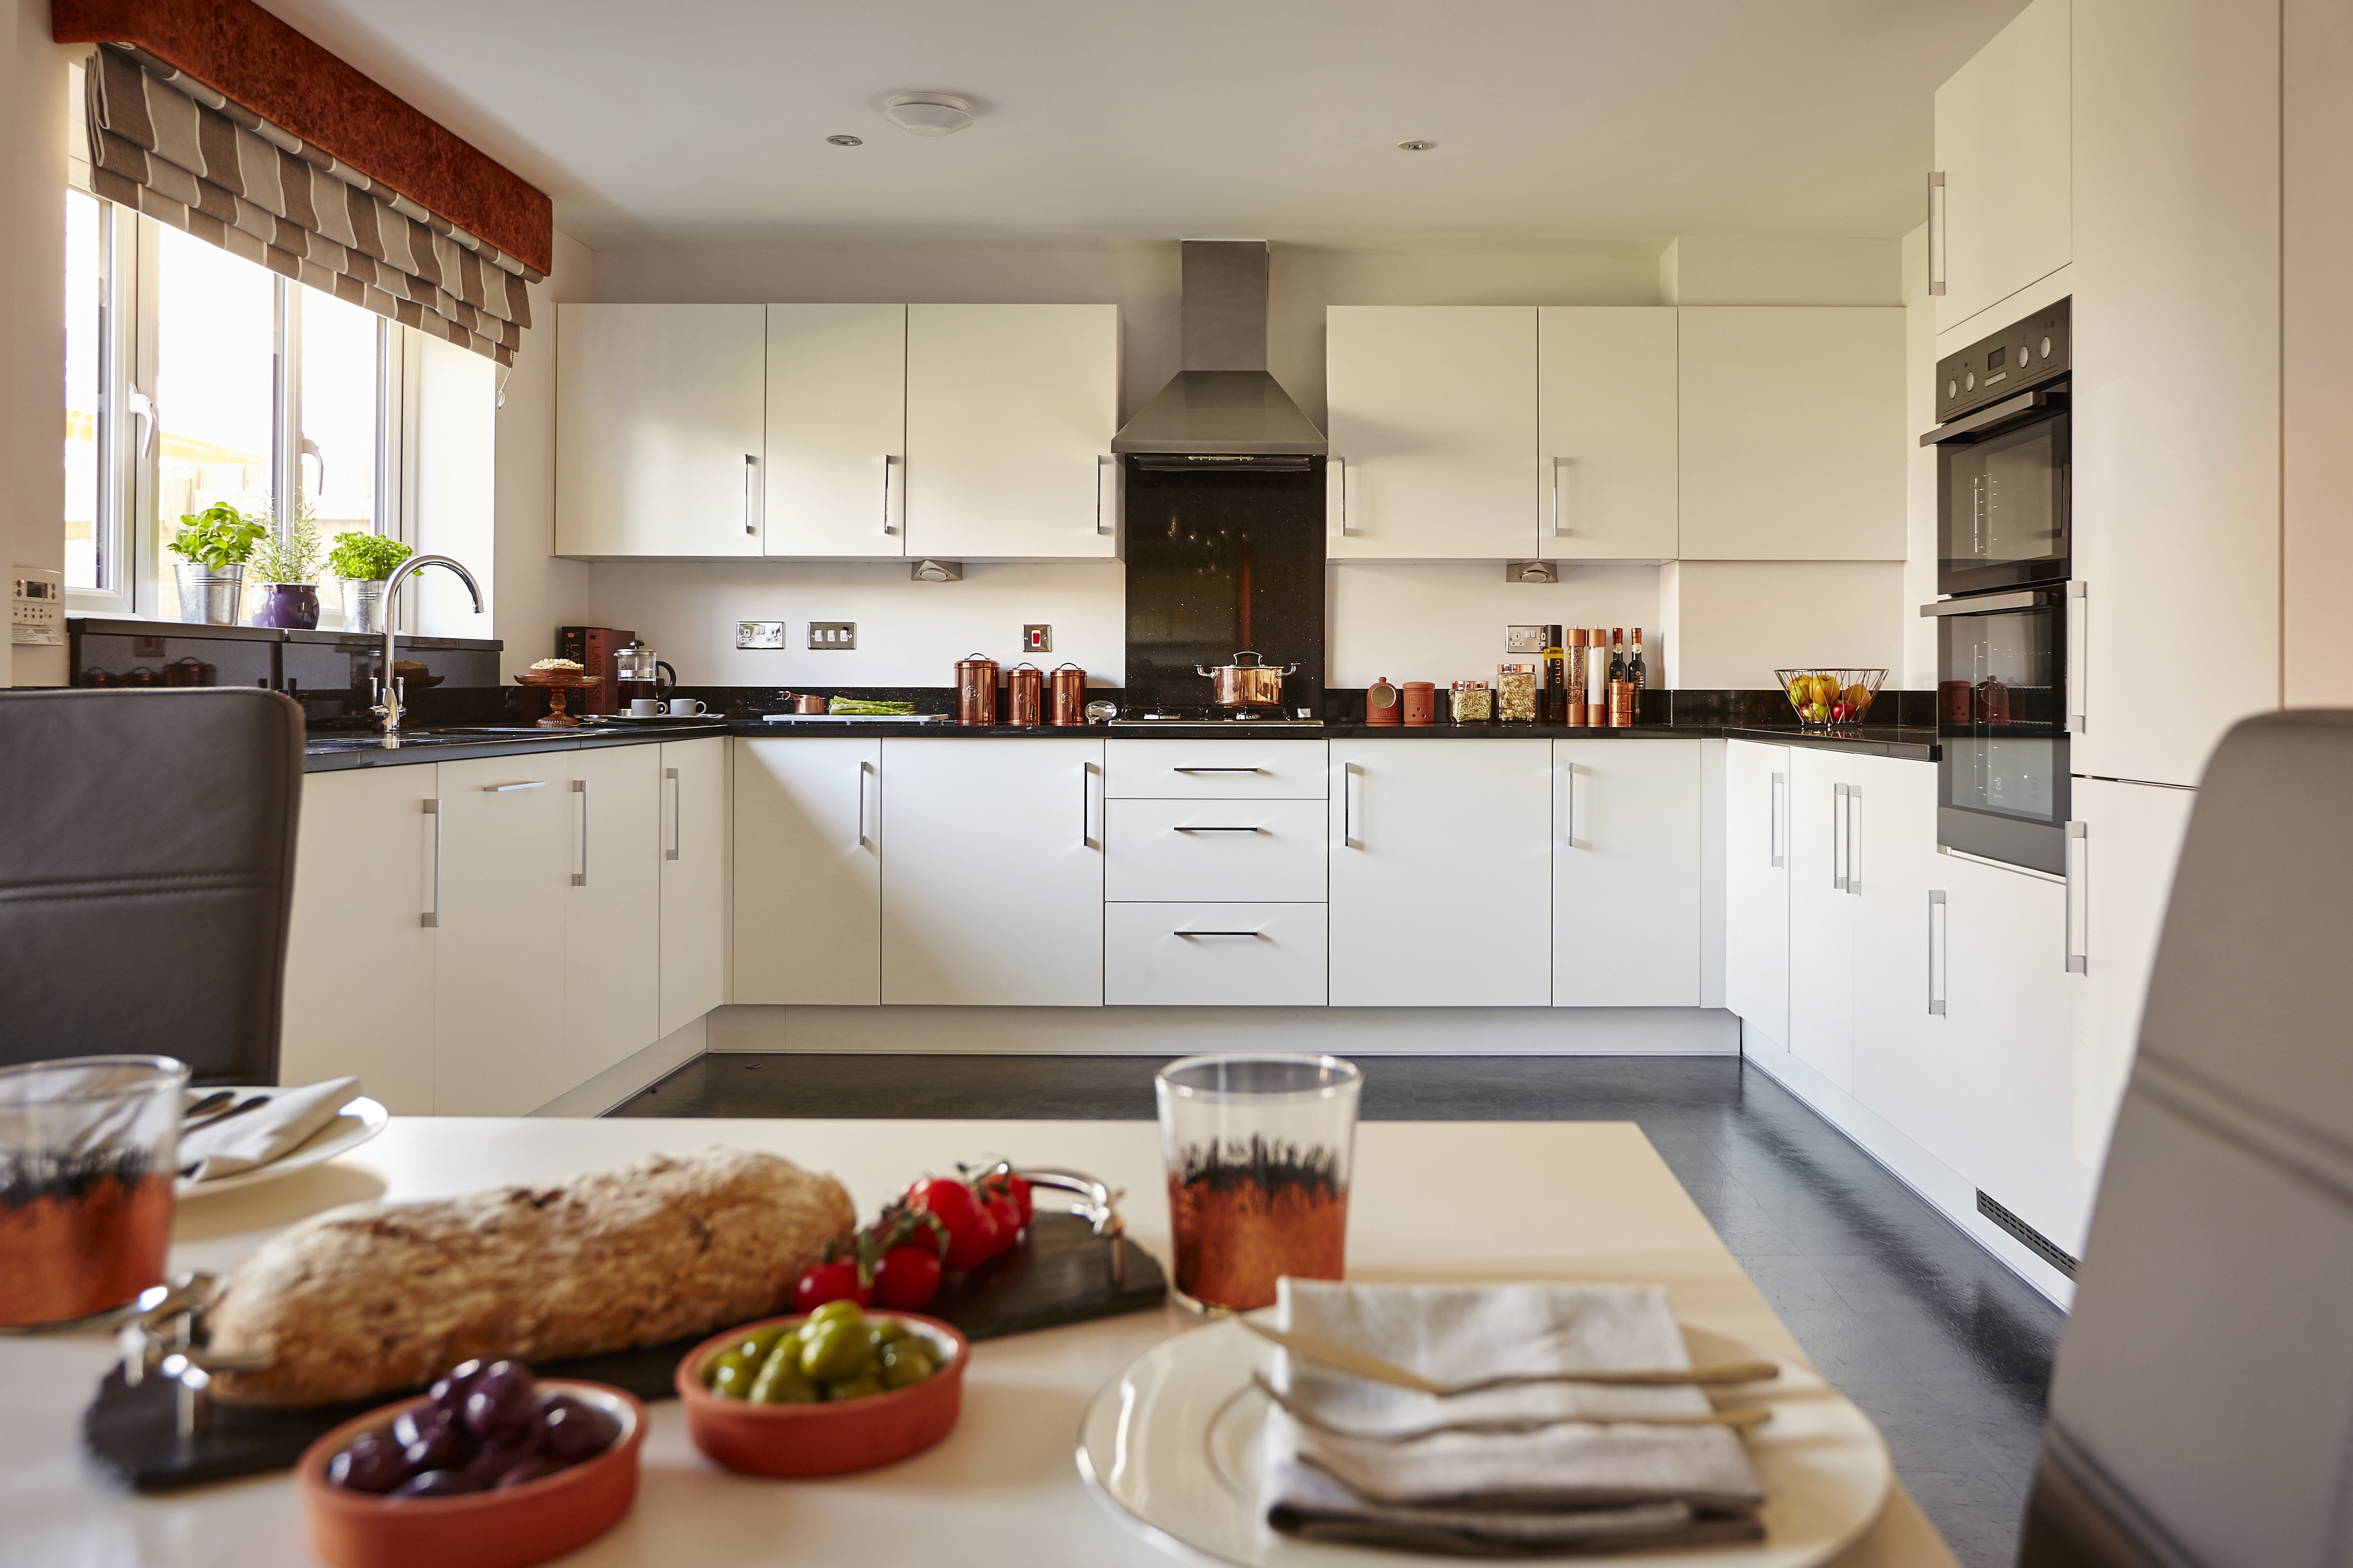 TW WMids_Bowbrook_Hartlebury_PD411_Haddenham_kitchen